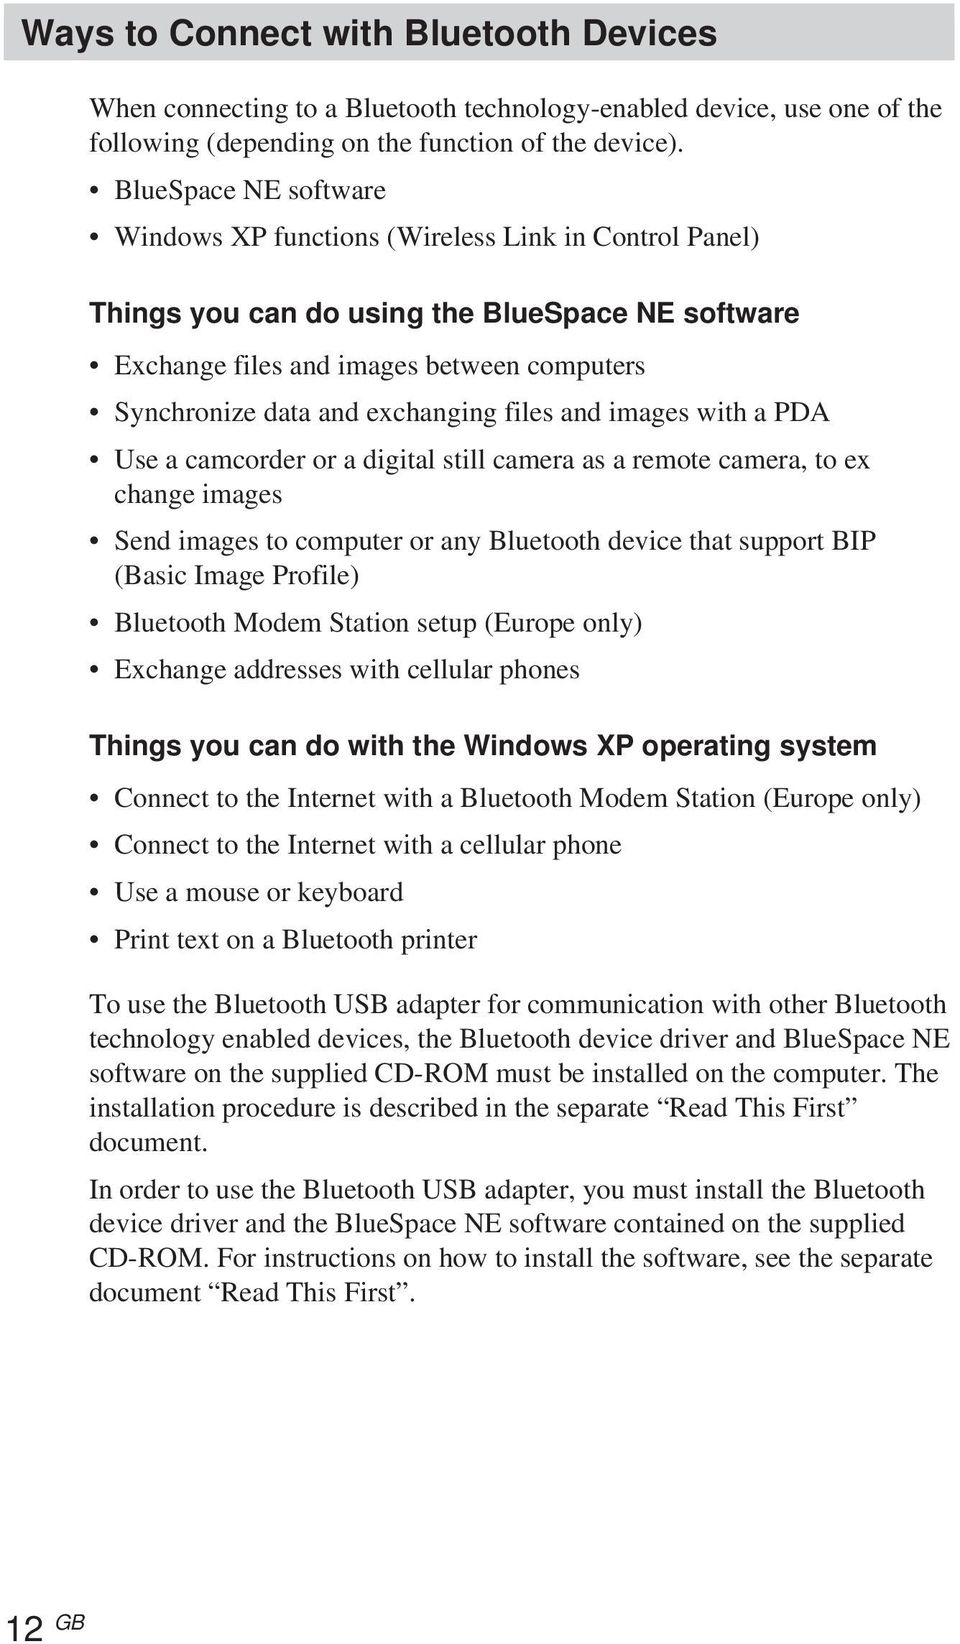 exchanging files and images with a PDA Use a camcorder or a digital still camera as a remote camera, to ex change images Send images to computer or any Bluetooth device that support BIP (Basic Image